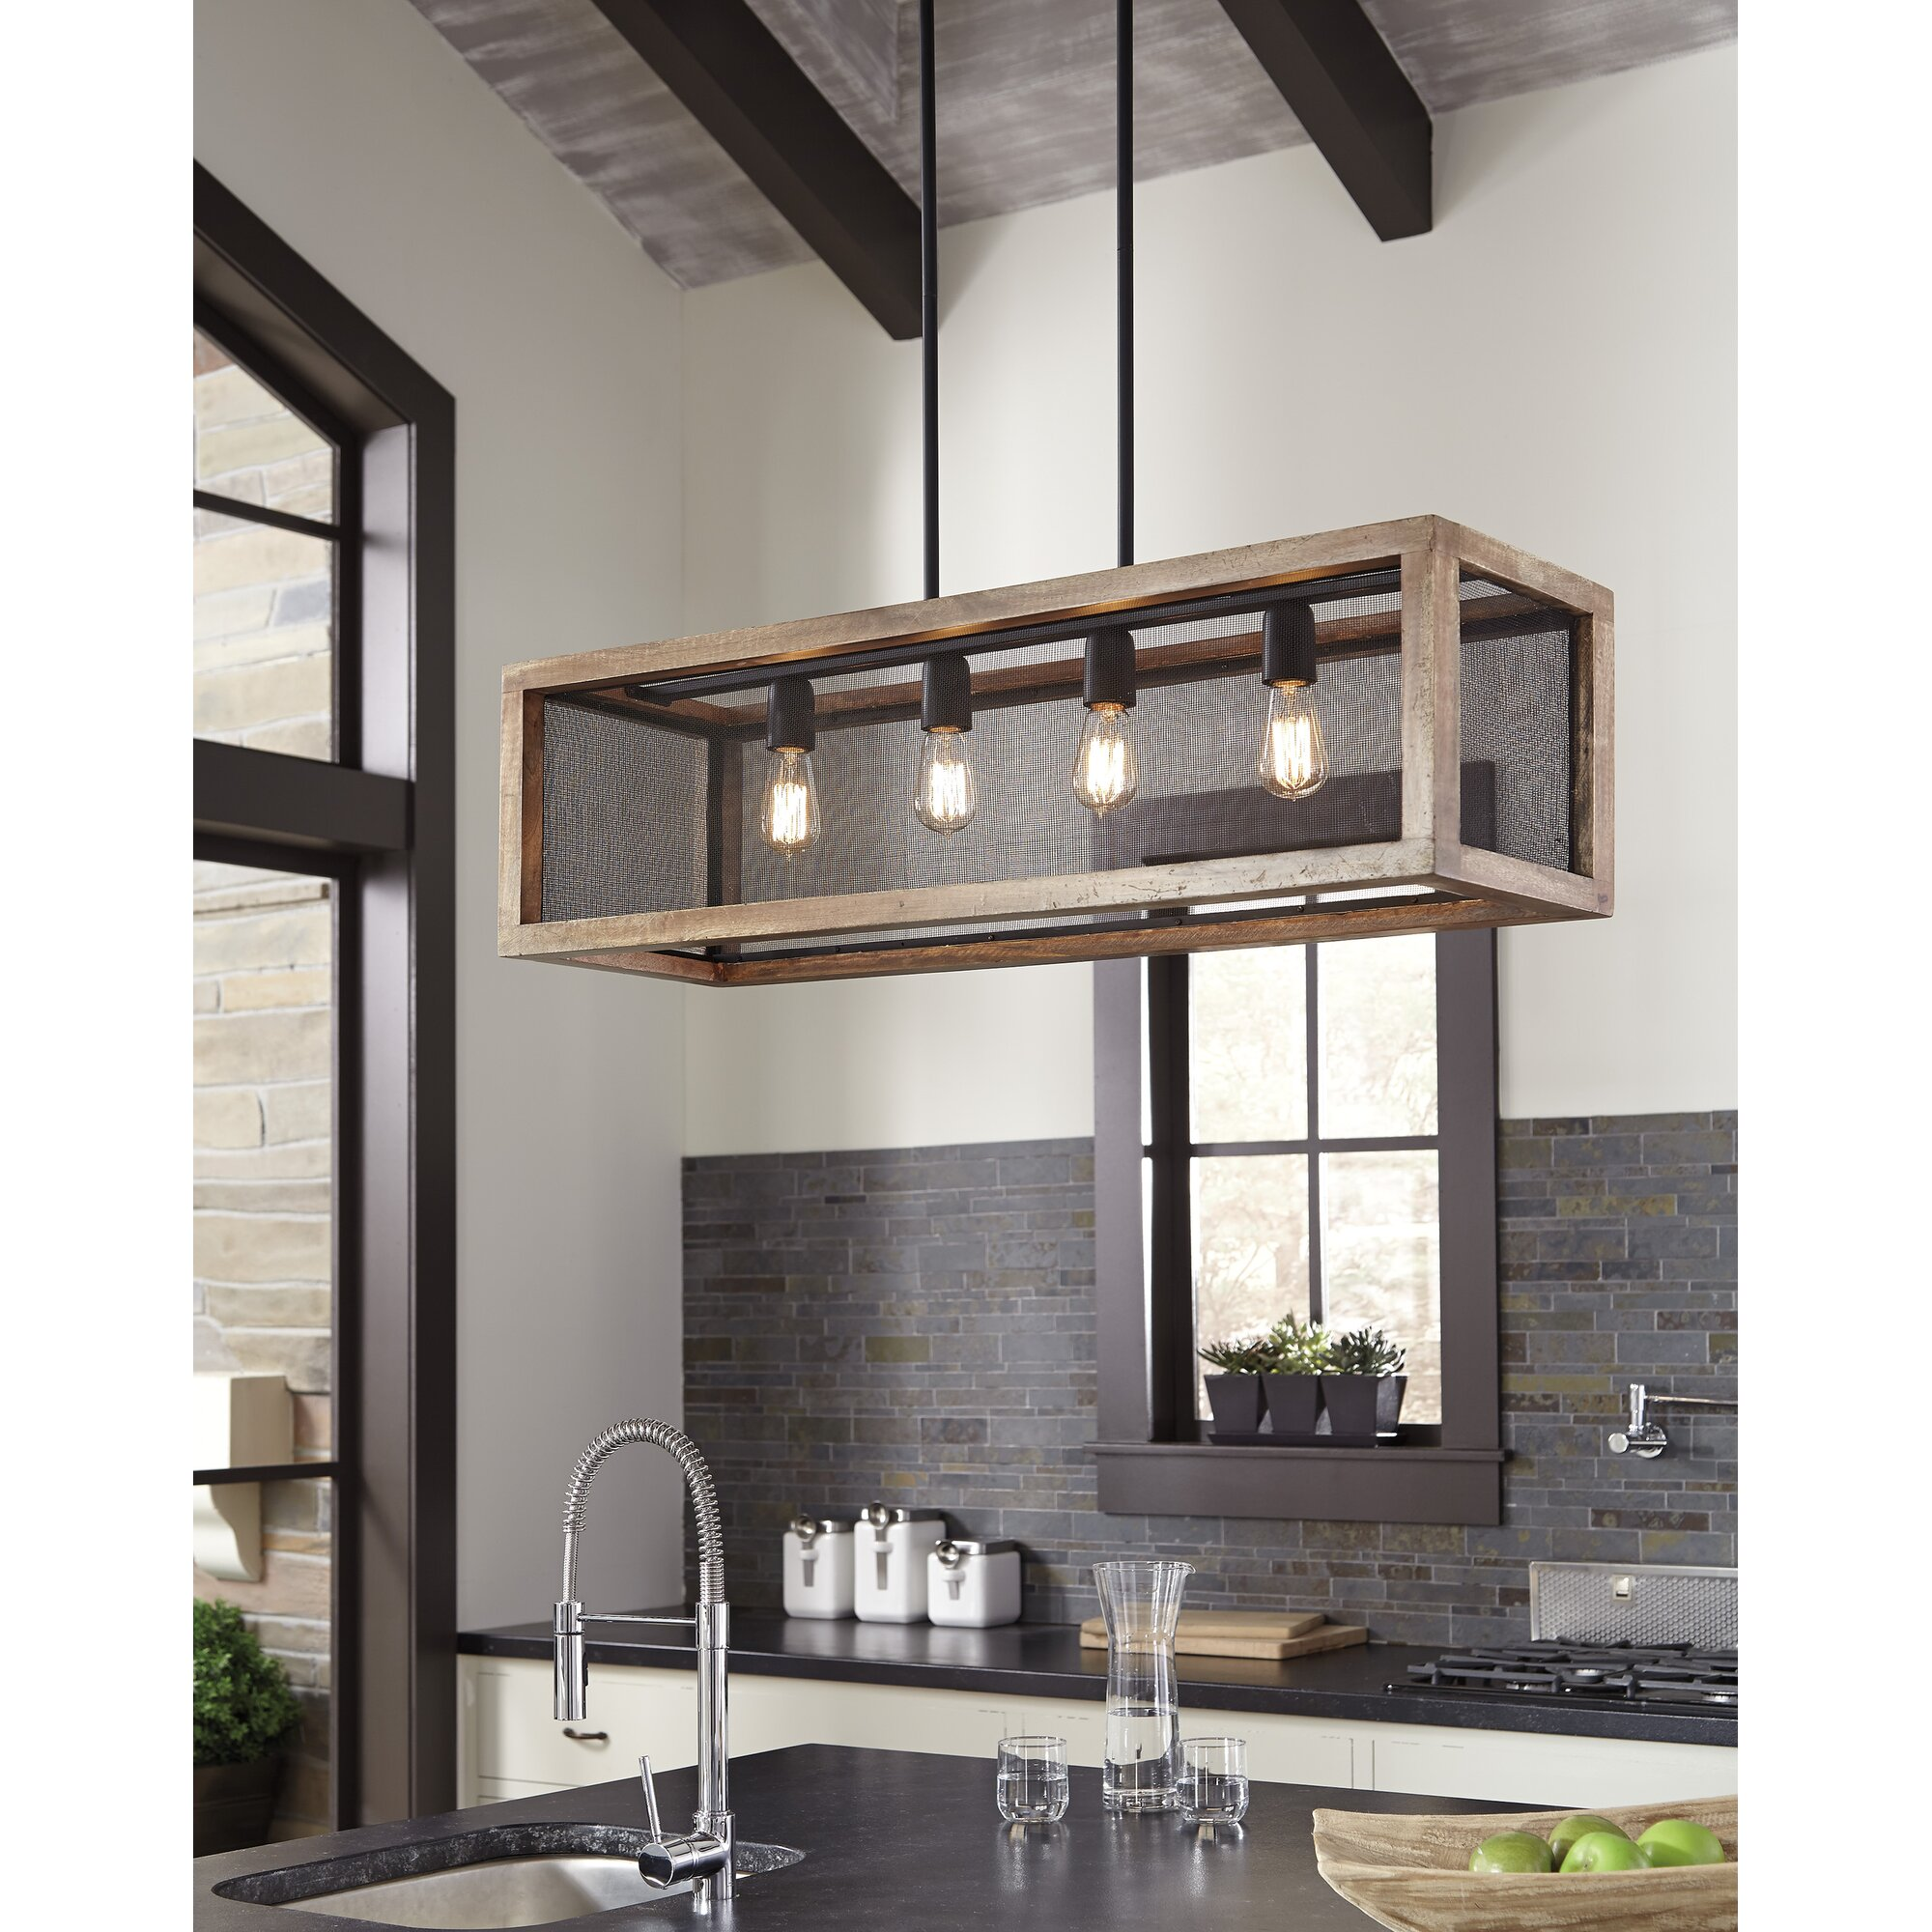 Laurel foundry modern farmhouse haley 4 light kitchen for Farmhouse pendant lighting kitchen